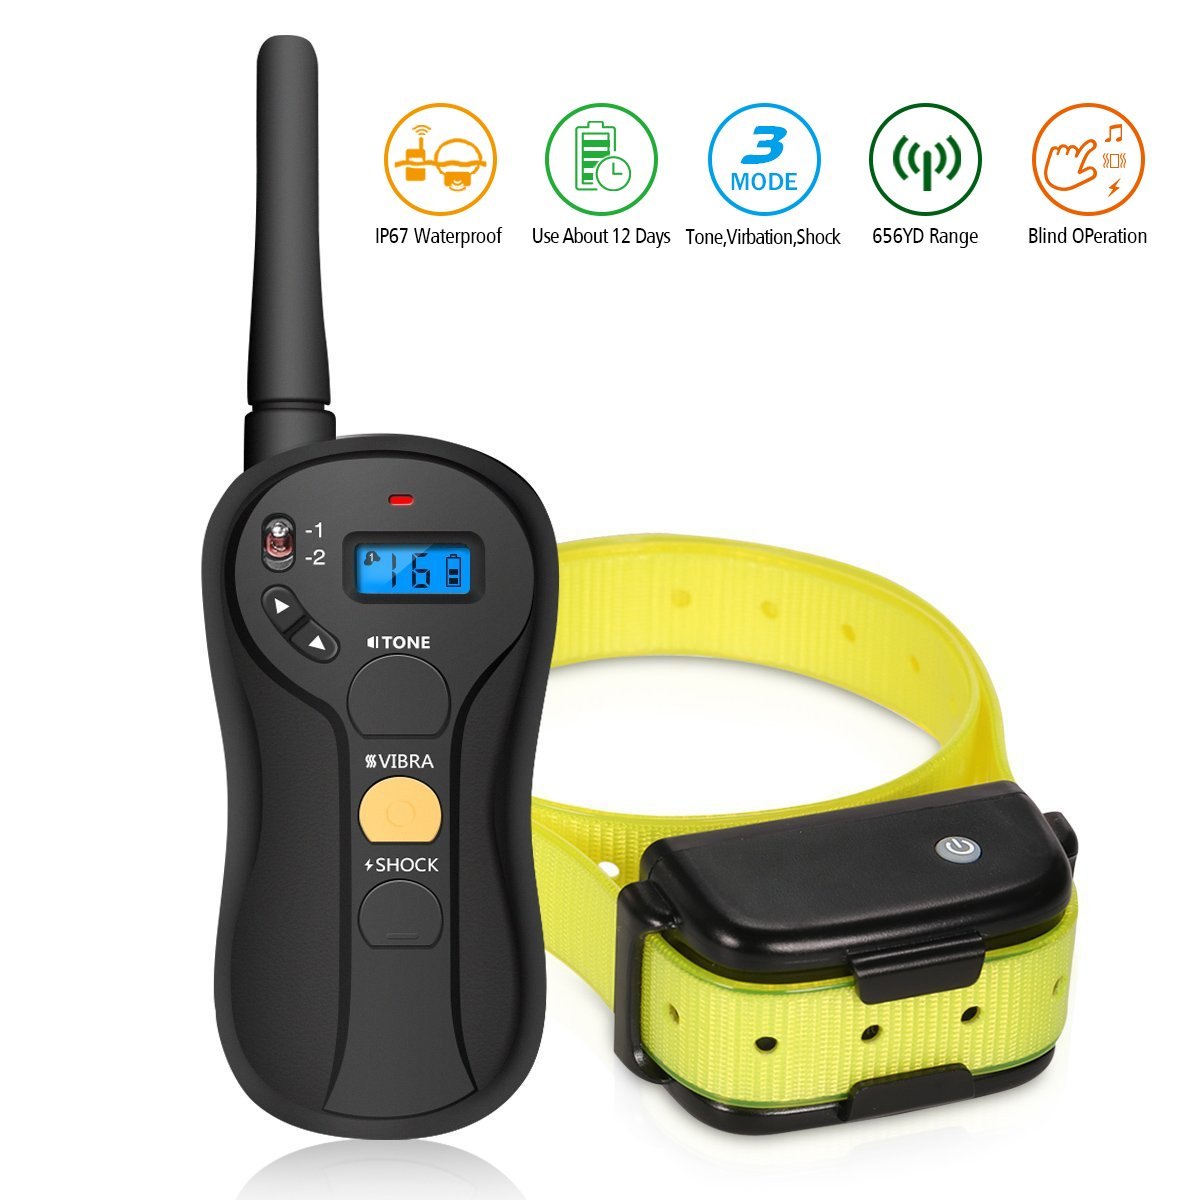 Remote Dog Training Collar FOCUSPET Electric Dog Training Shock Collar with Remote 655 yd Rechargeable and Waterproof 16 Levels ToneVibration & Shock for Small Medium & Large Dogs